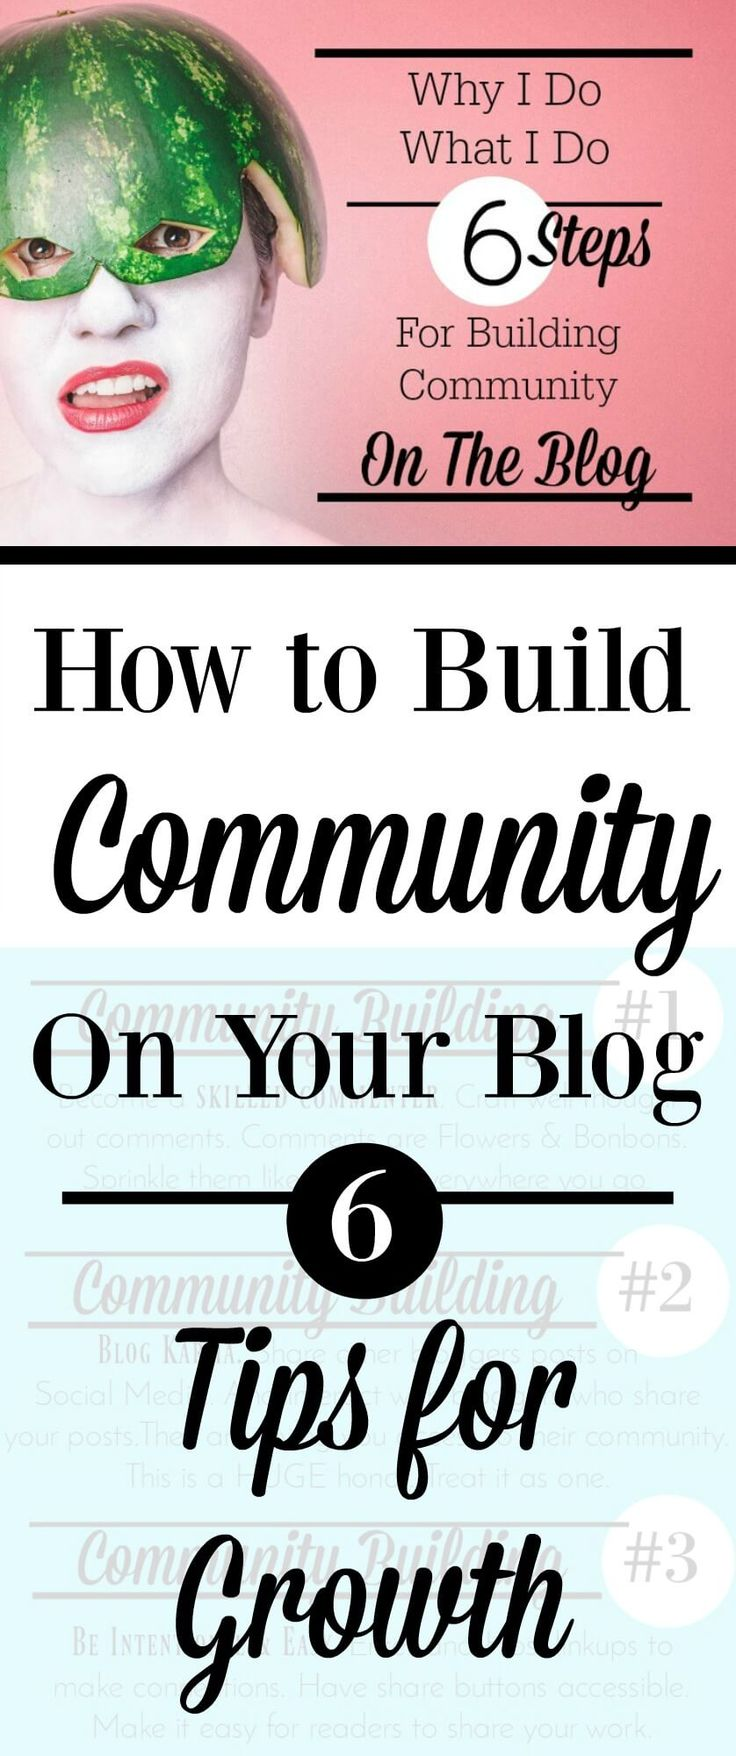 Why I do what I do on the Blog to create community. 6 Tips or Steps to create community.